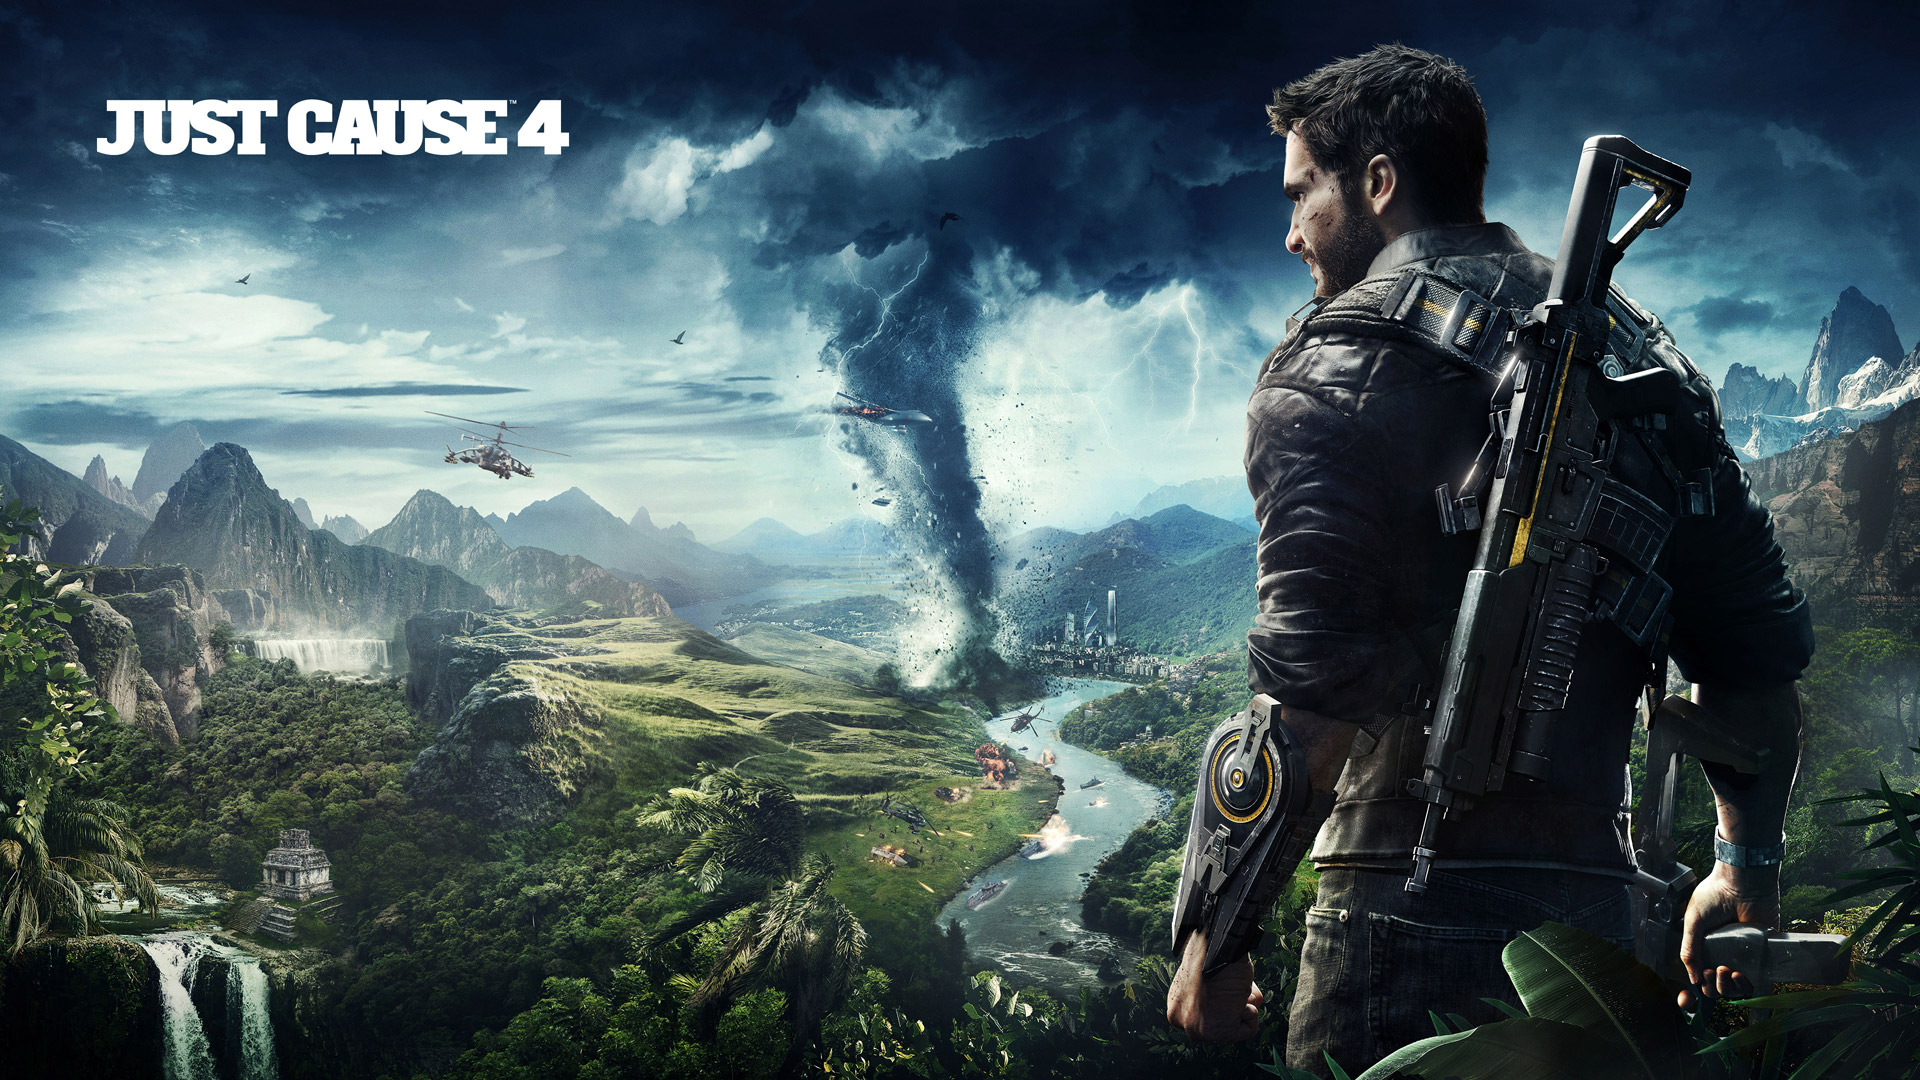 Just Cause 4 Wallpaper in 1920x1080